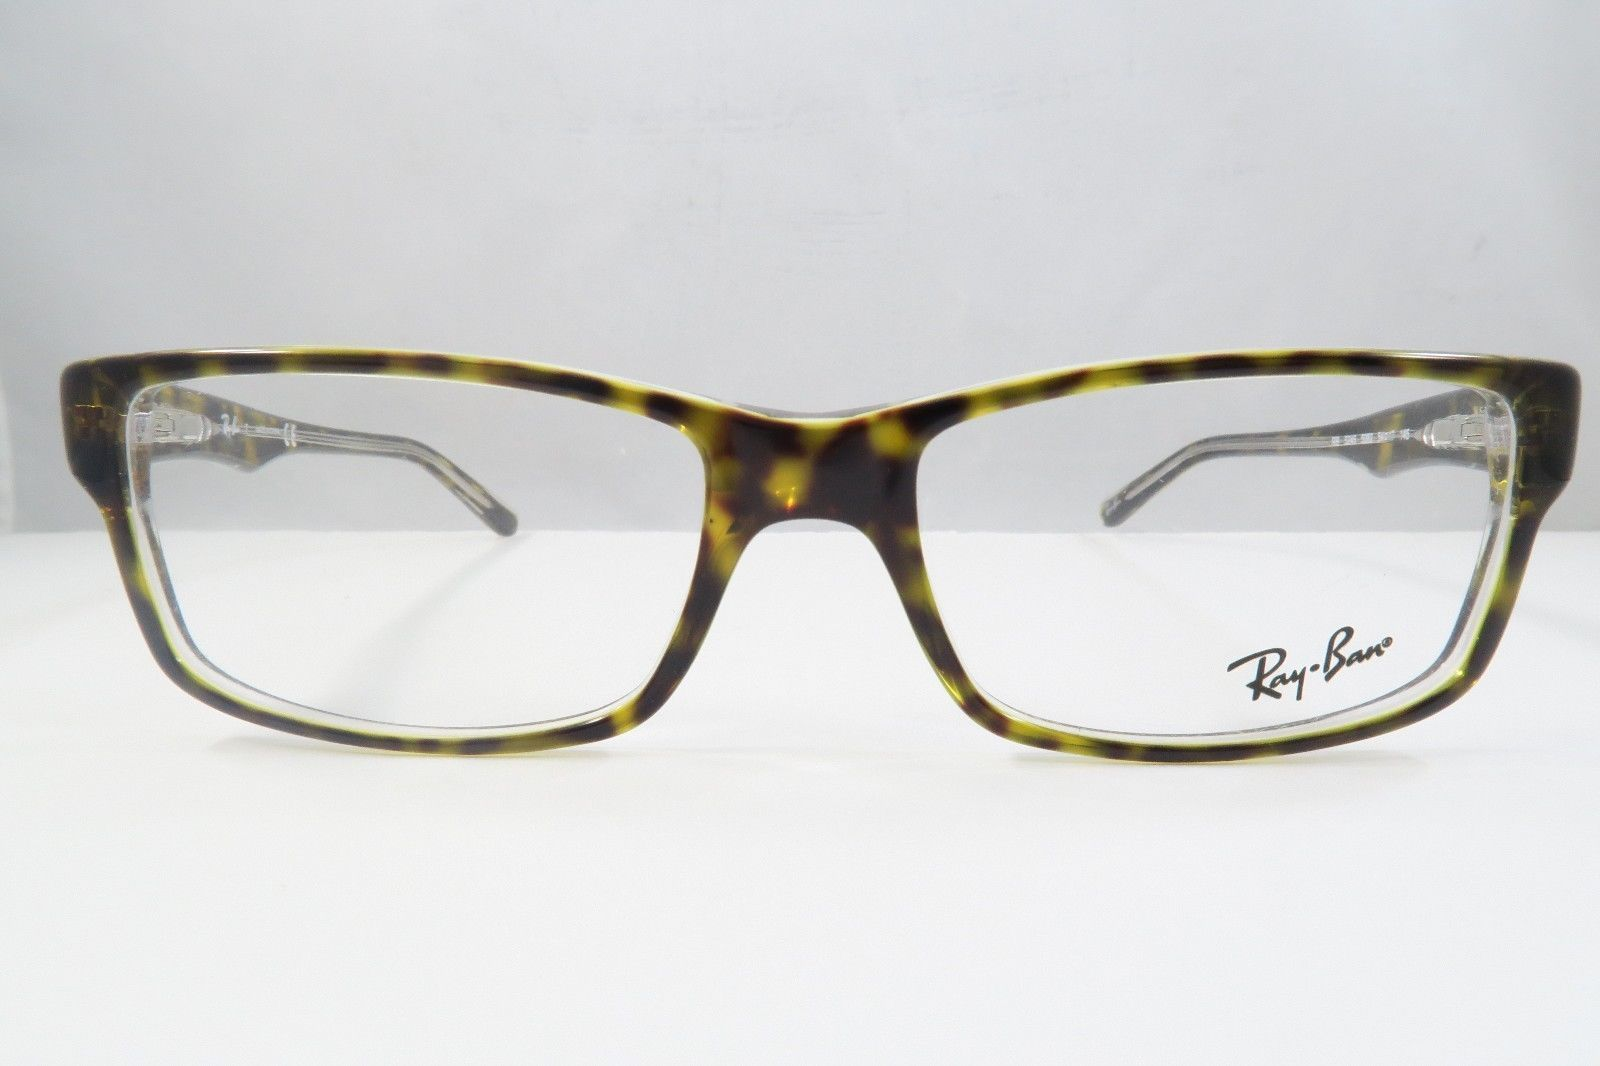 aca2a5793b S l1600. S l1600. Previous. Ray-Ban RB 5245 5082 Havana on Clear New  Authentic Eyeglasses 52mm - 192